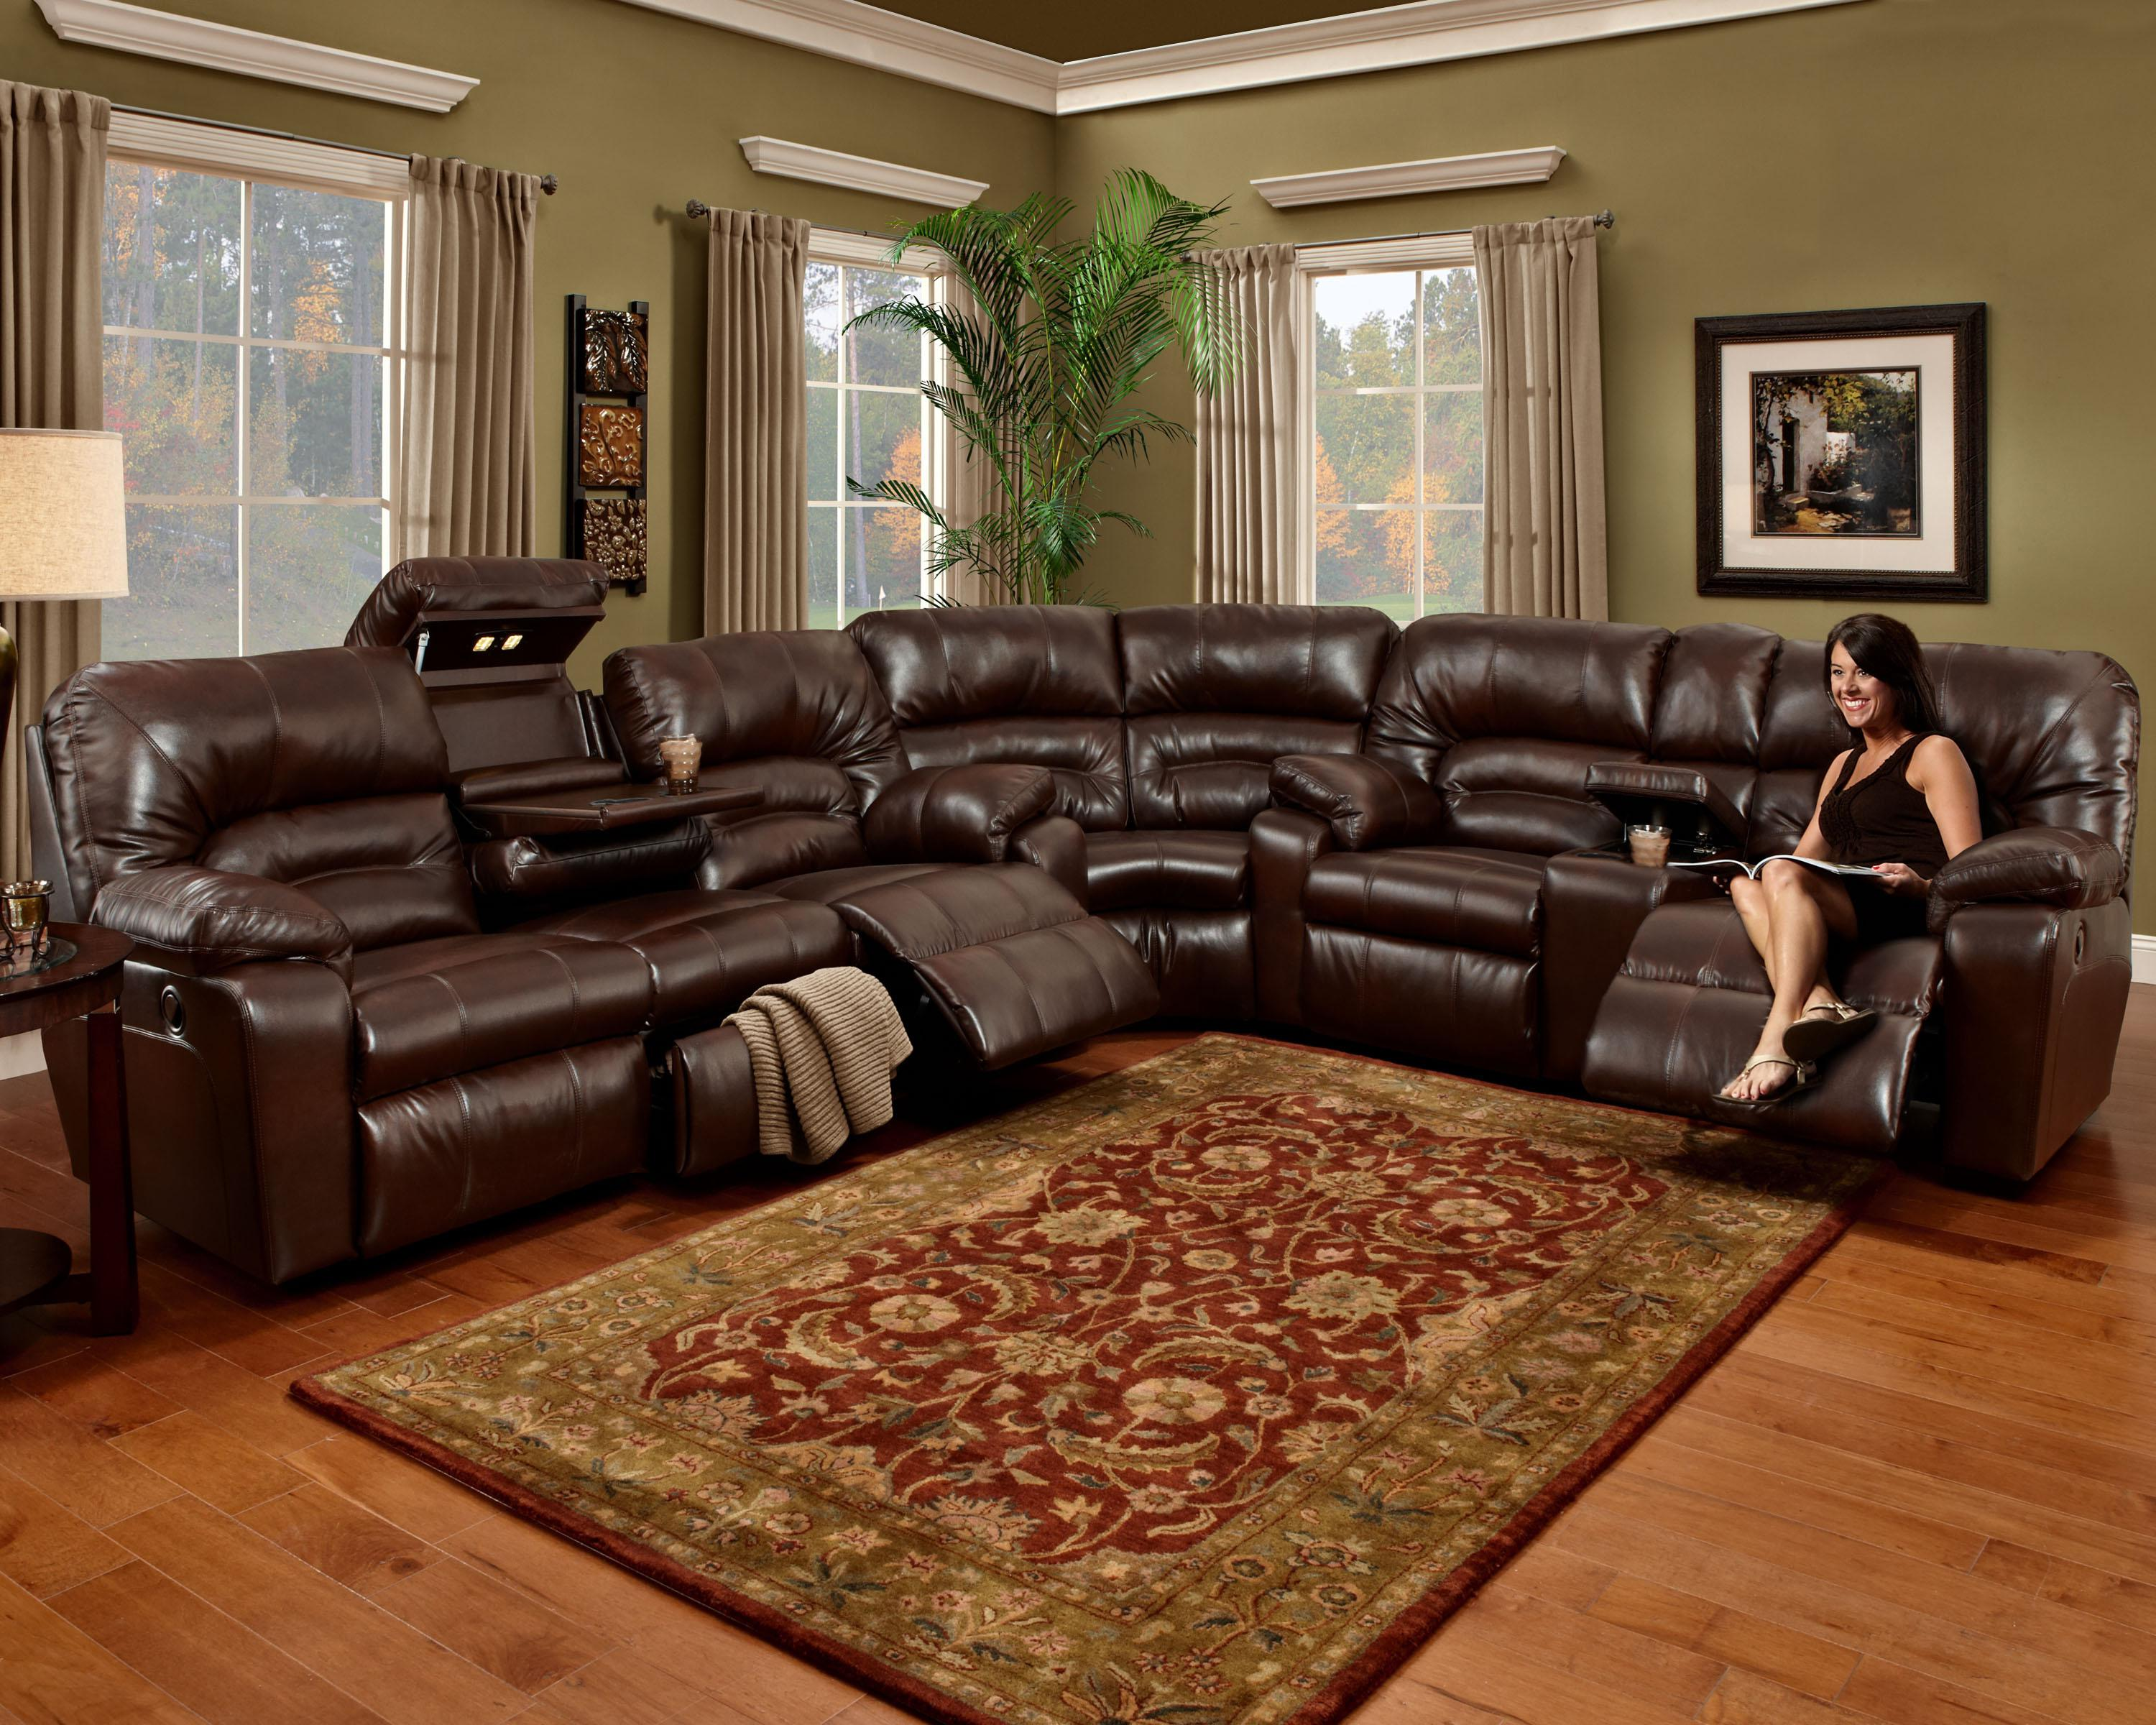 596 3 Piece Sectional by Franklin at Wilcox Furniture